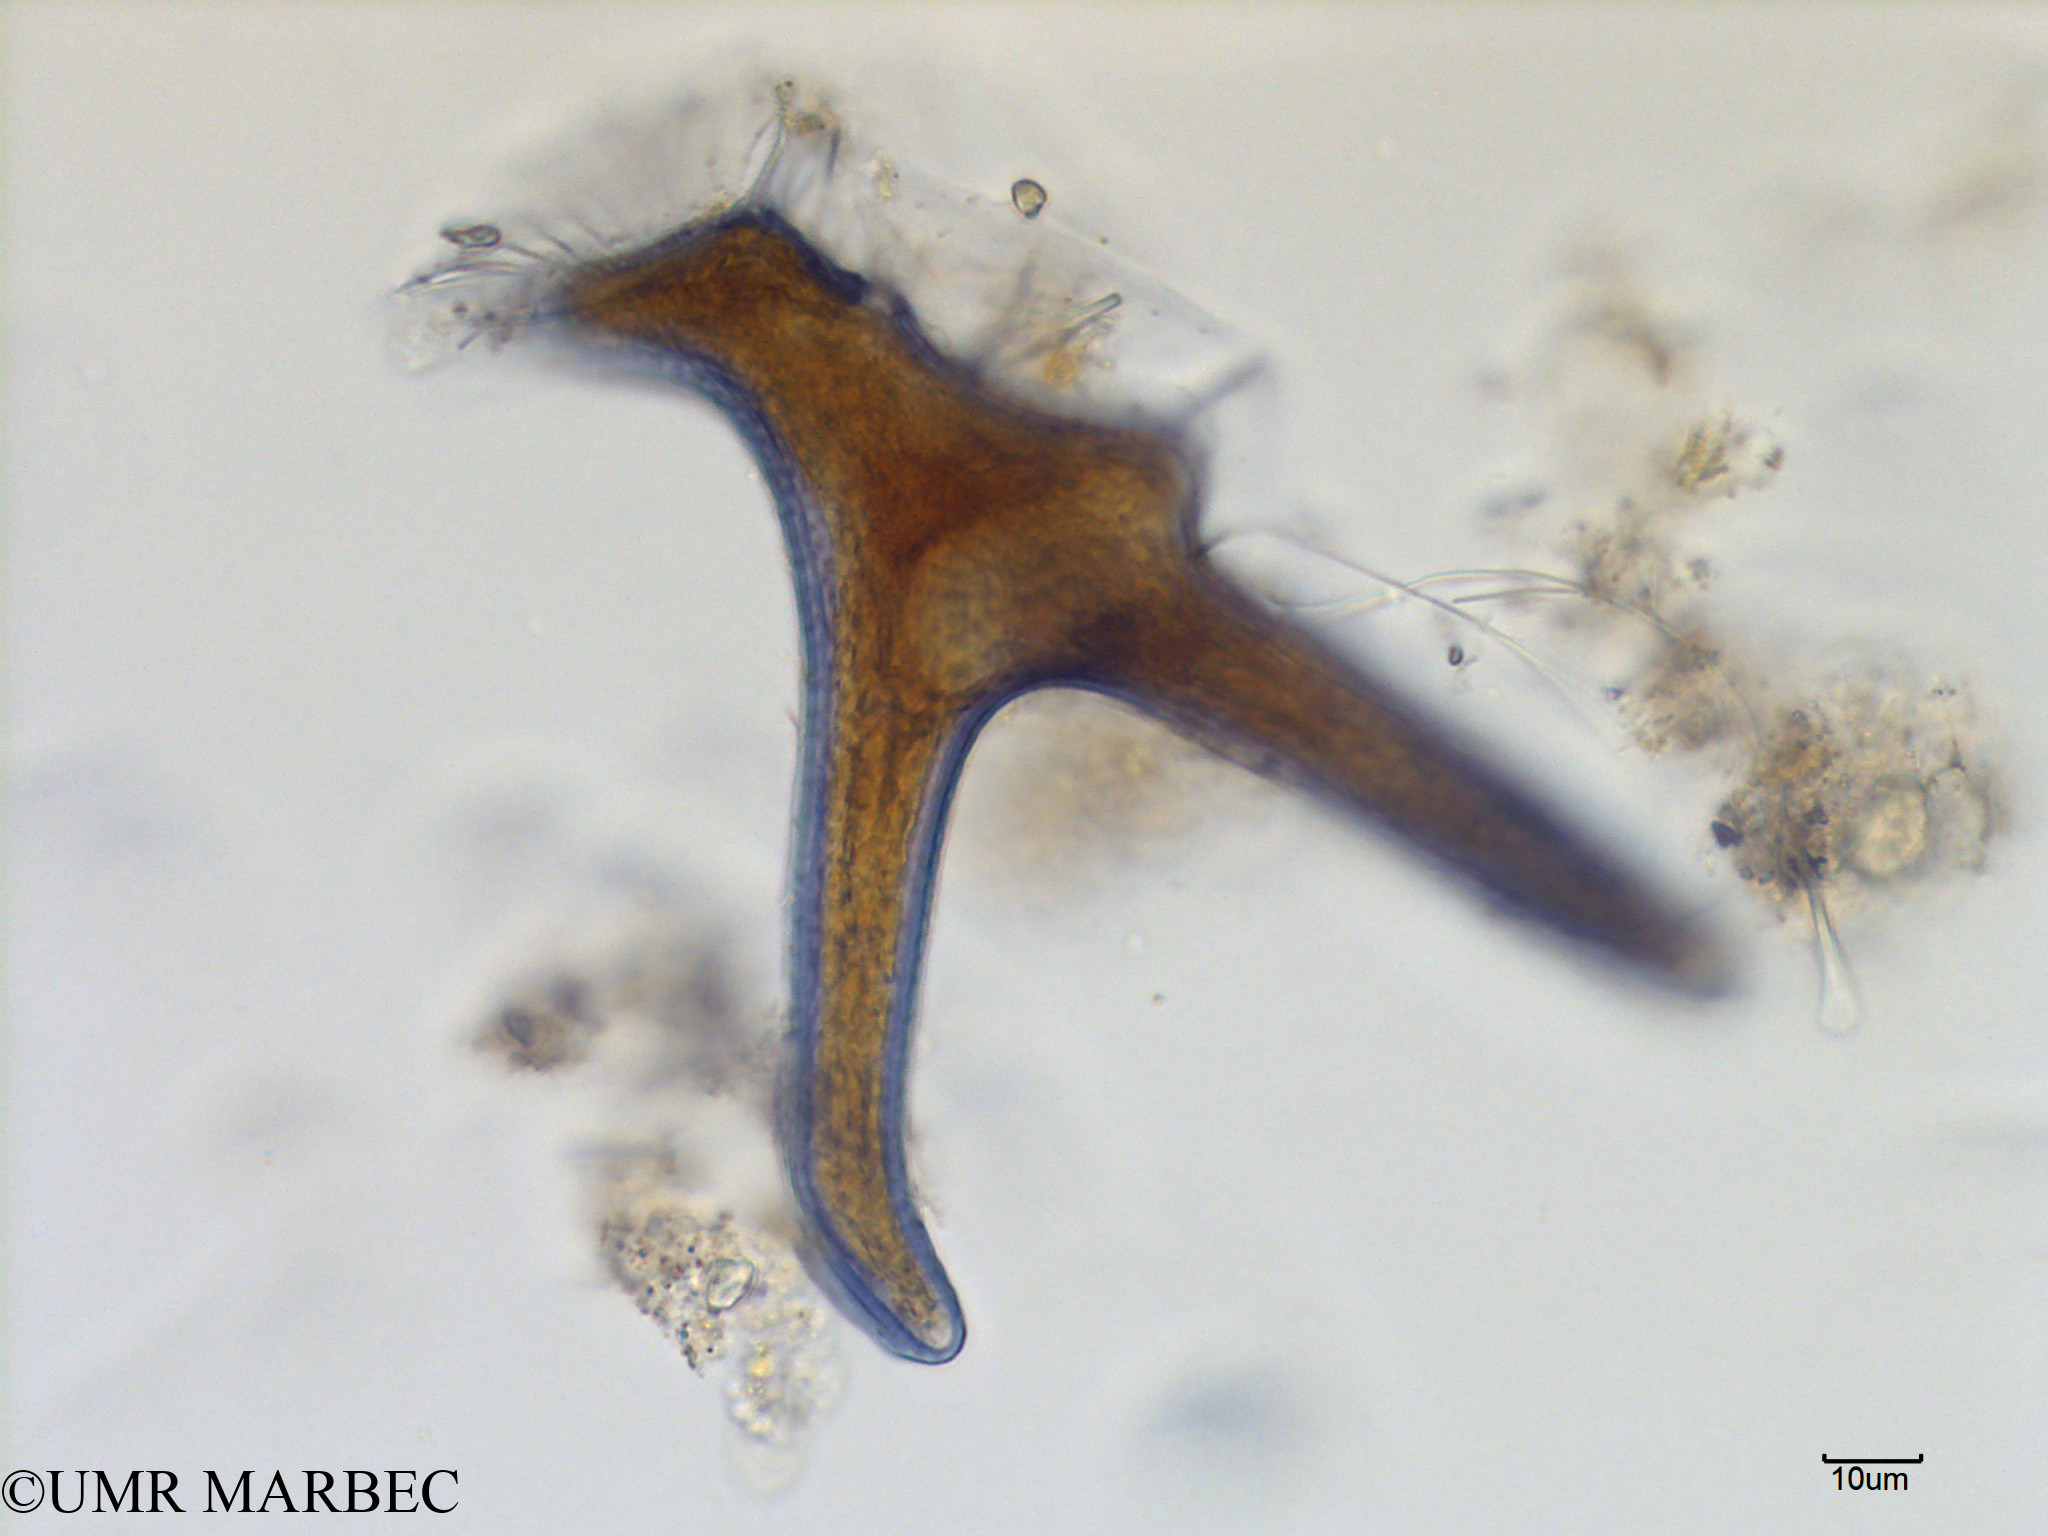 phyto/Scattered_Islands/mayotte_lagoon/SIREME May 2016/Dinophysis miles (MAY8_dino a identifier-13).tif(copy).jpg